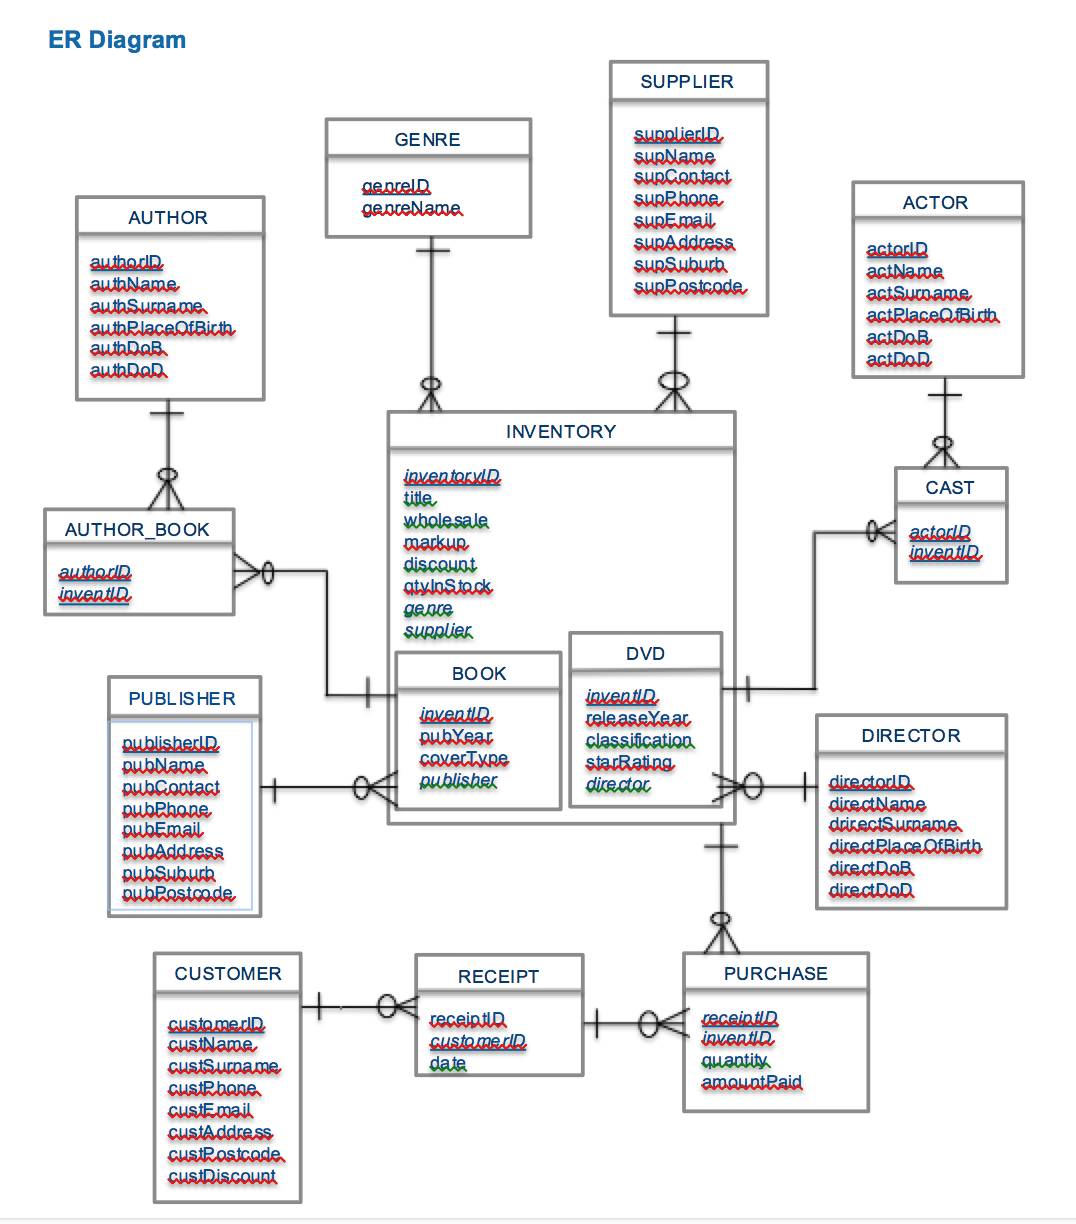 How Many Tables Will The Relational Schema Have For This Er with regard to Er Diagram Convert To Relational Schema